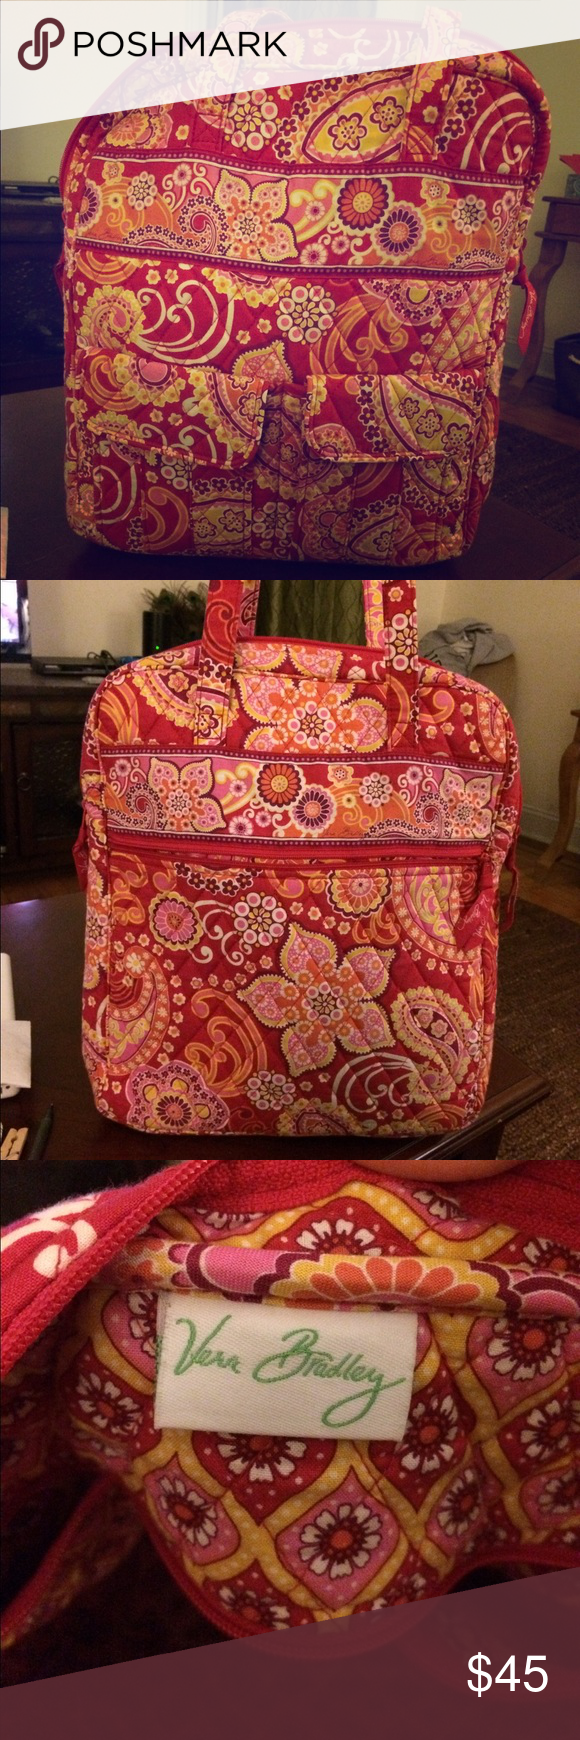 Vera Bradley laptop bag Print is raspberry fizz. Fits a laptop with books and notebooks. Perfect for a college student or teacher. Vera Bradley Bags Laptop Bags